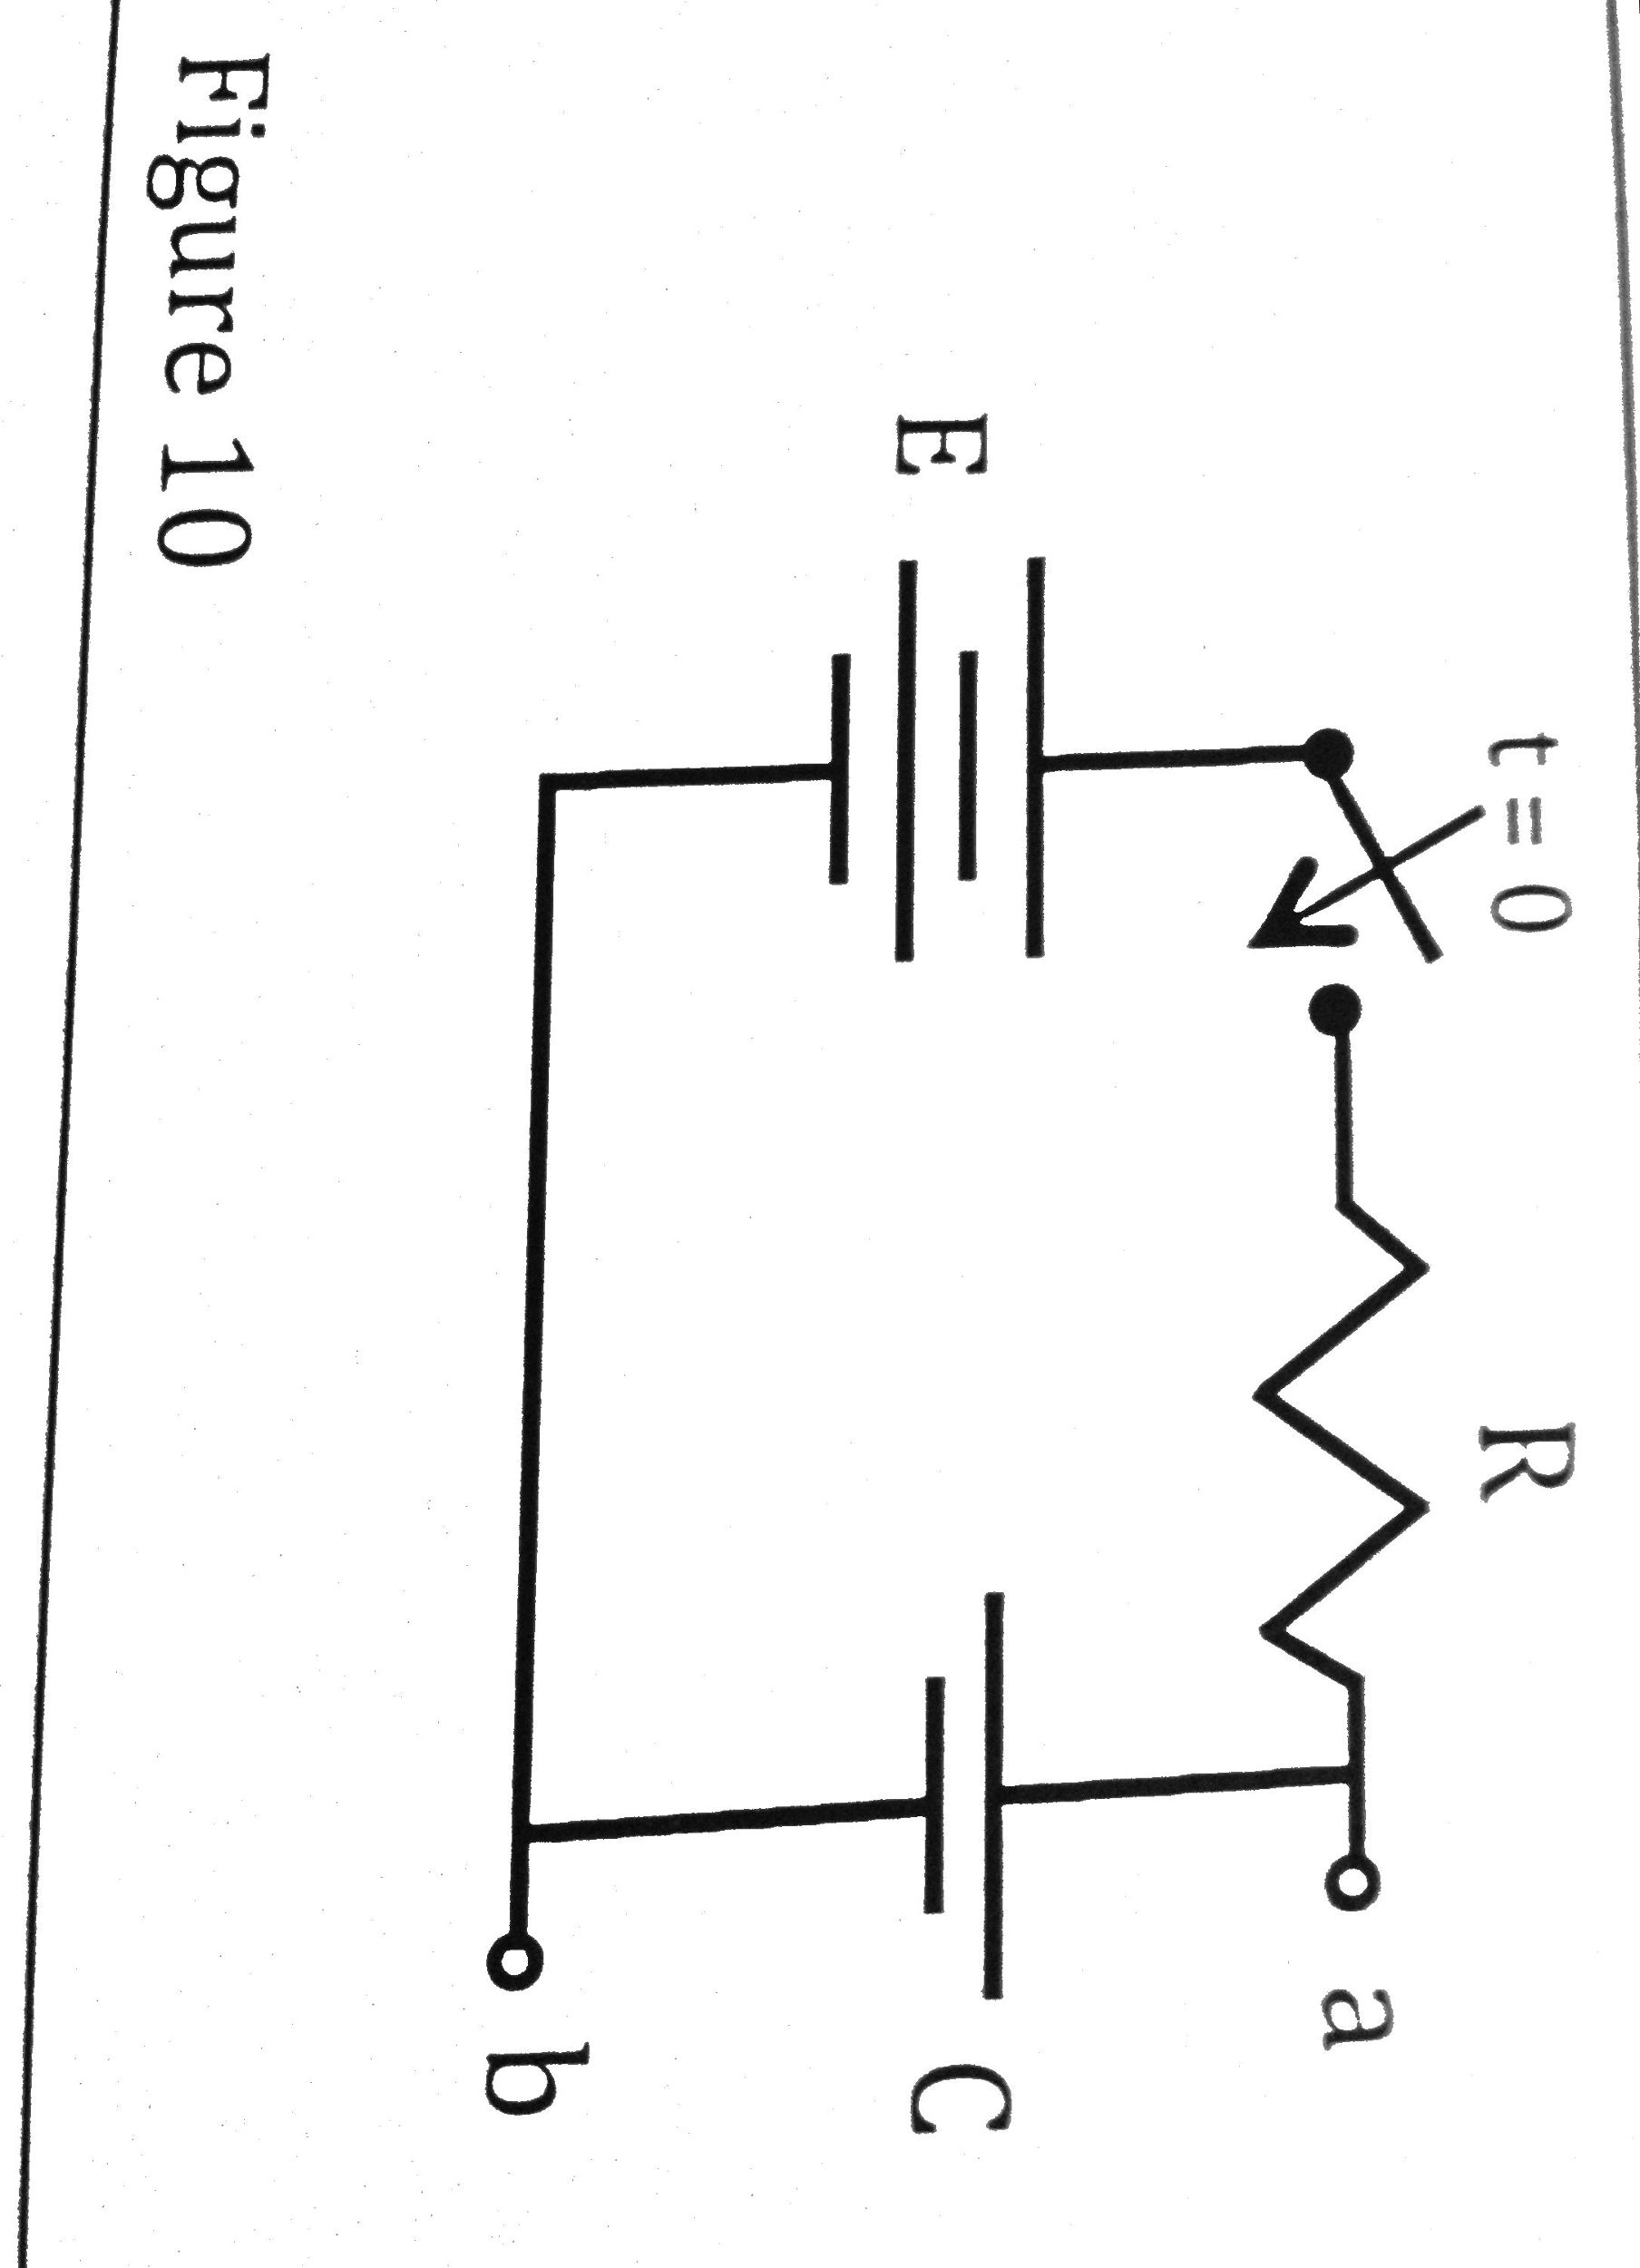 In Figure 10, replace the capacitor with an induct